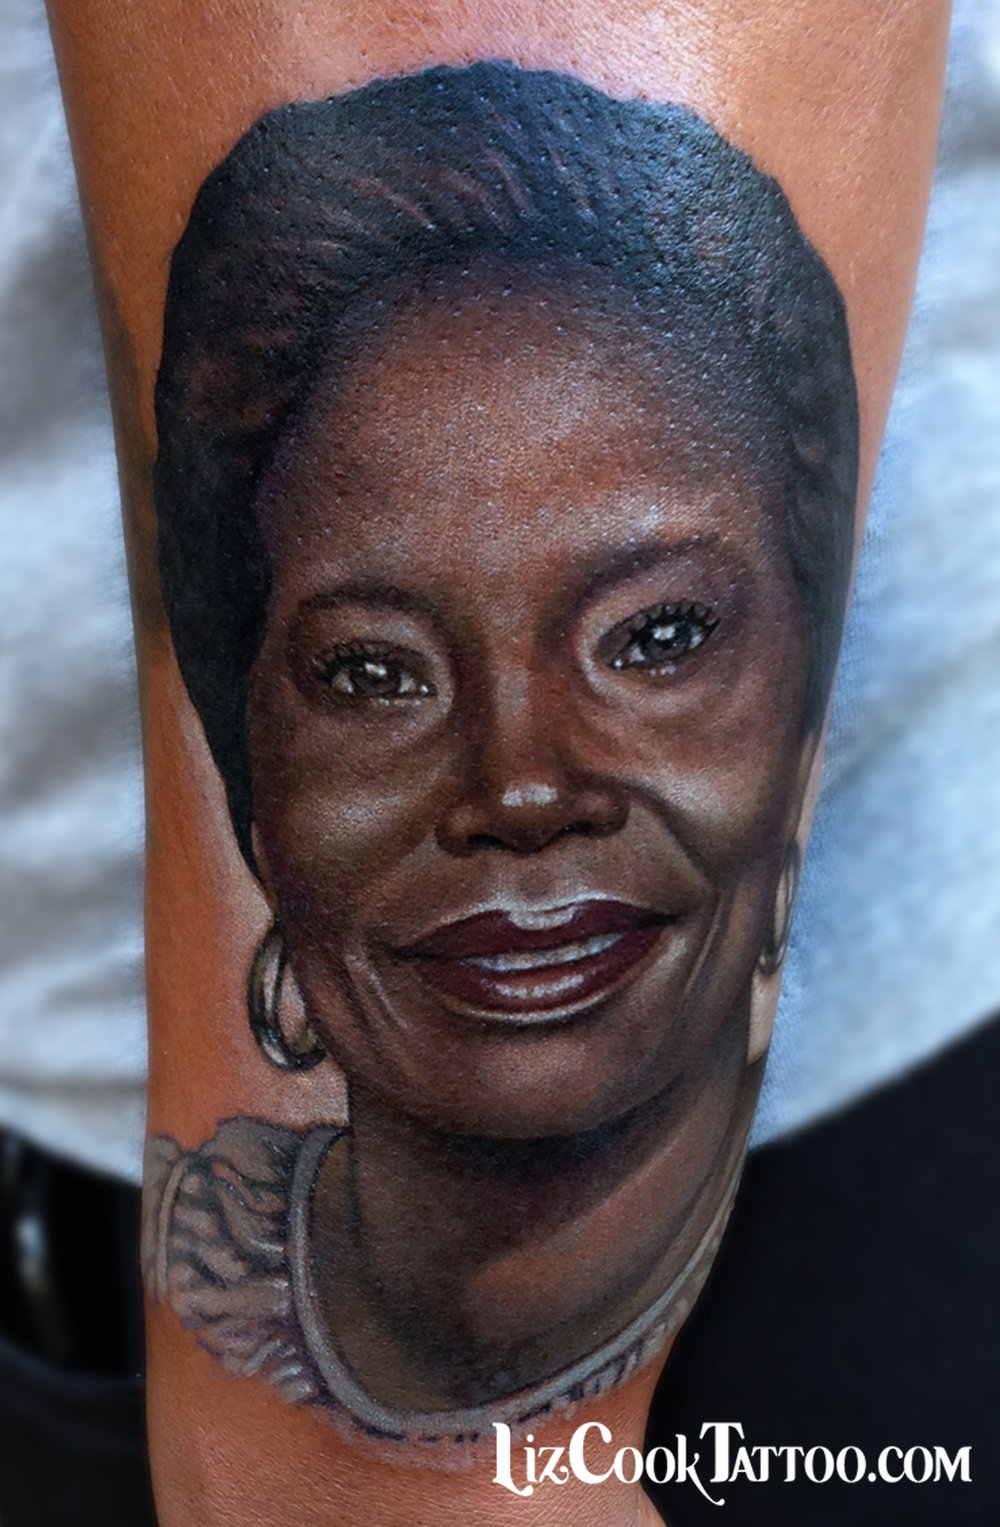 Liz Cook Tattoo Portrait Grandma Color Realism Dark Skin.jpg